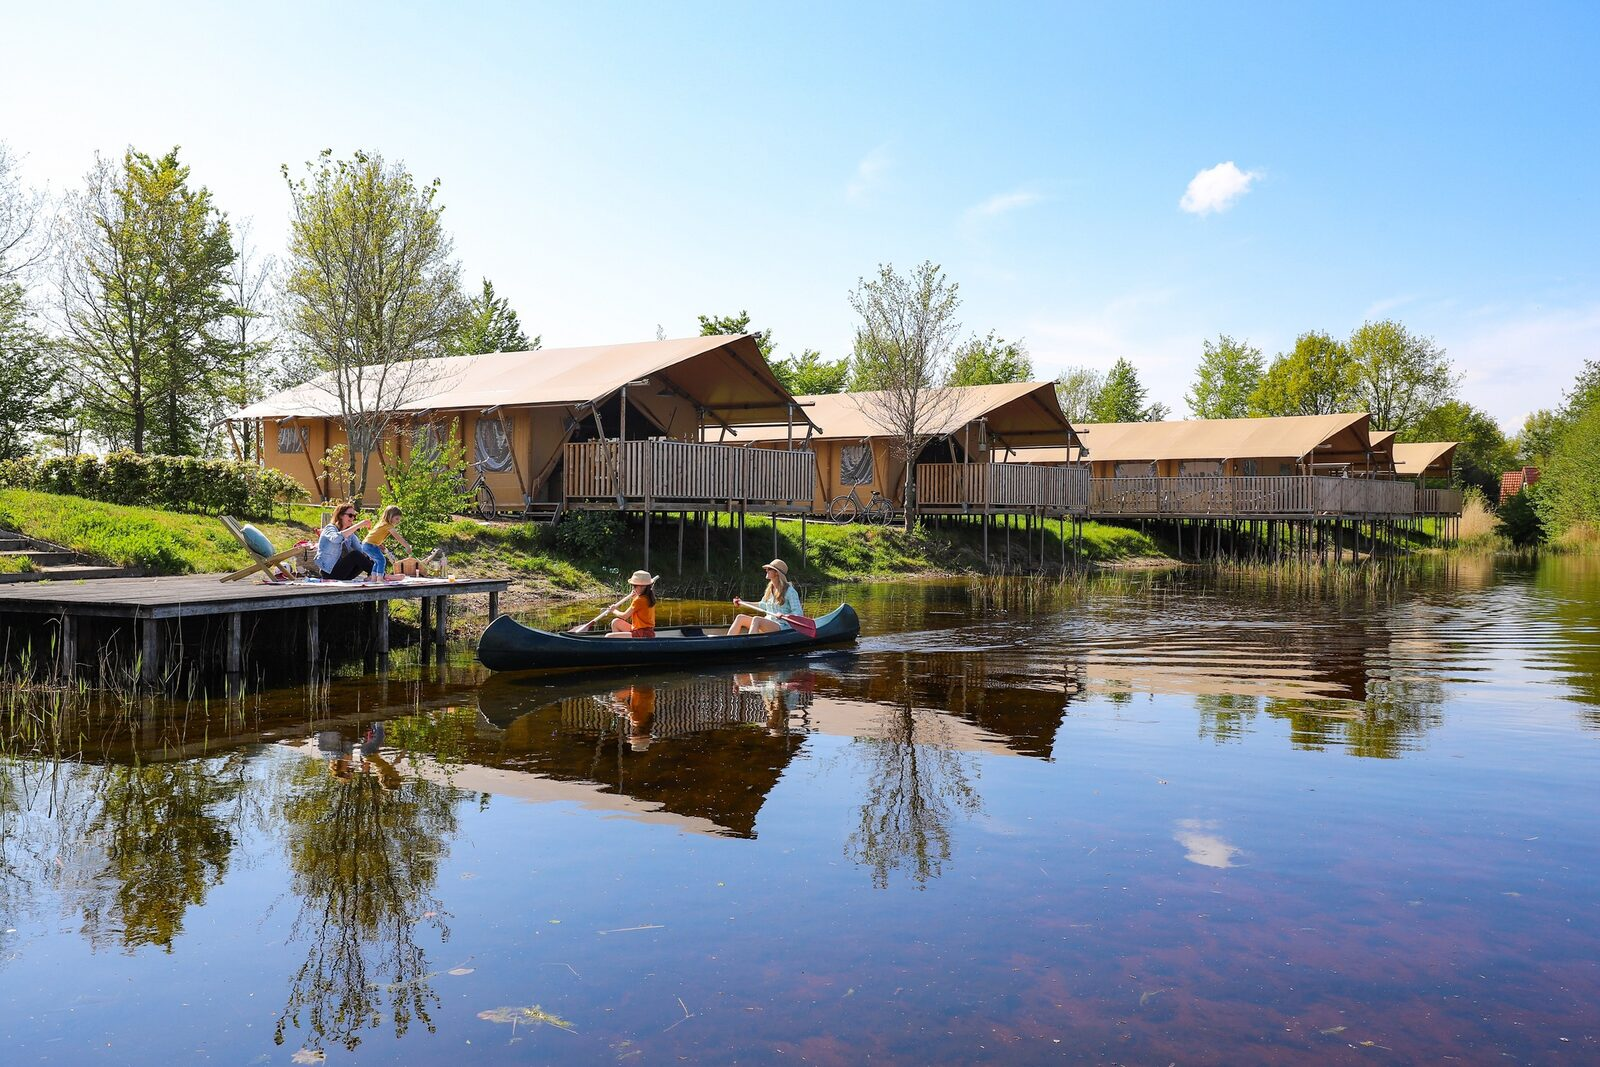 Group accommodation: group tent + four 6-person luxury glamping tents (24 people)